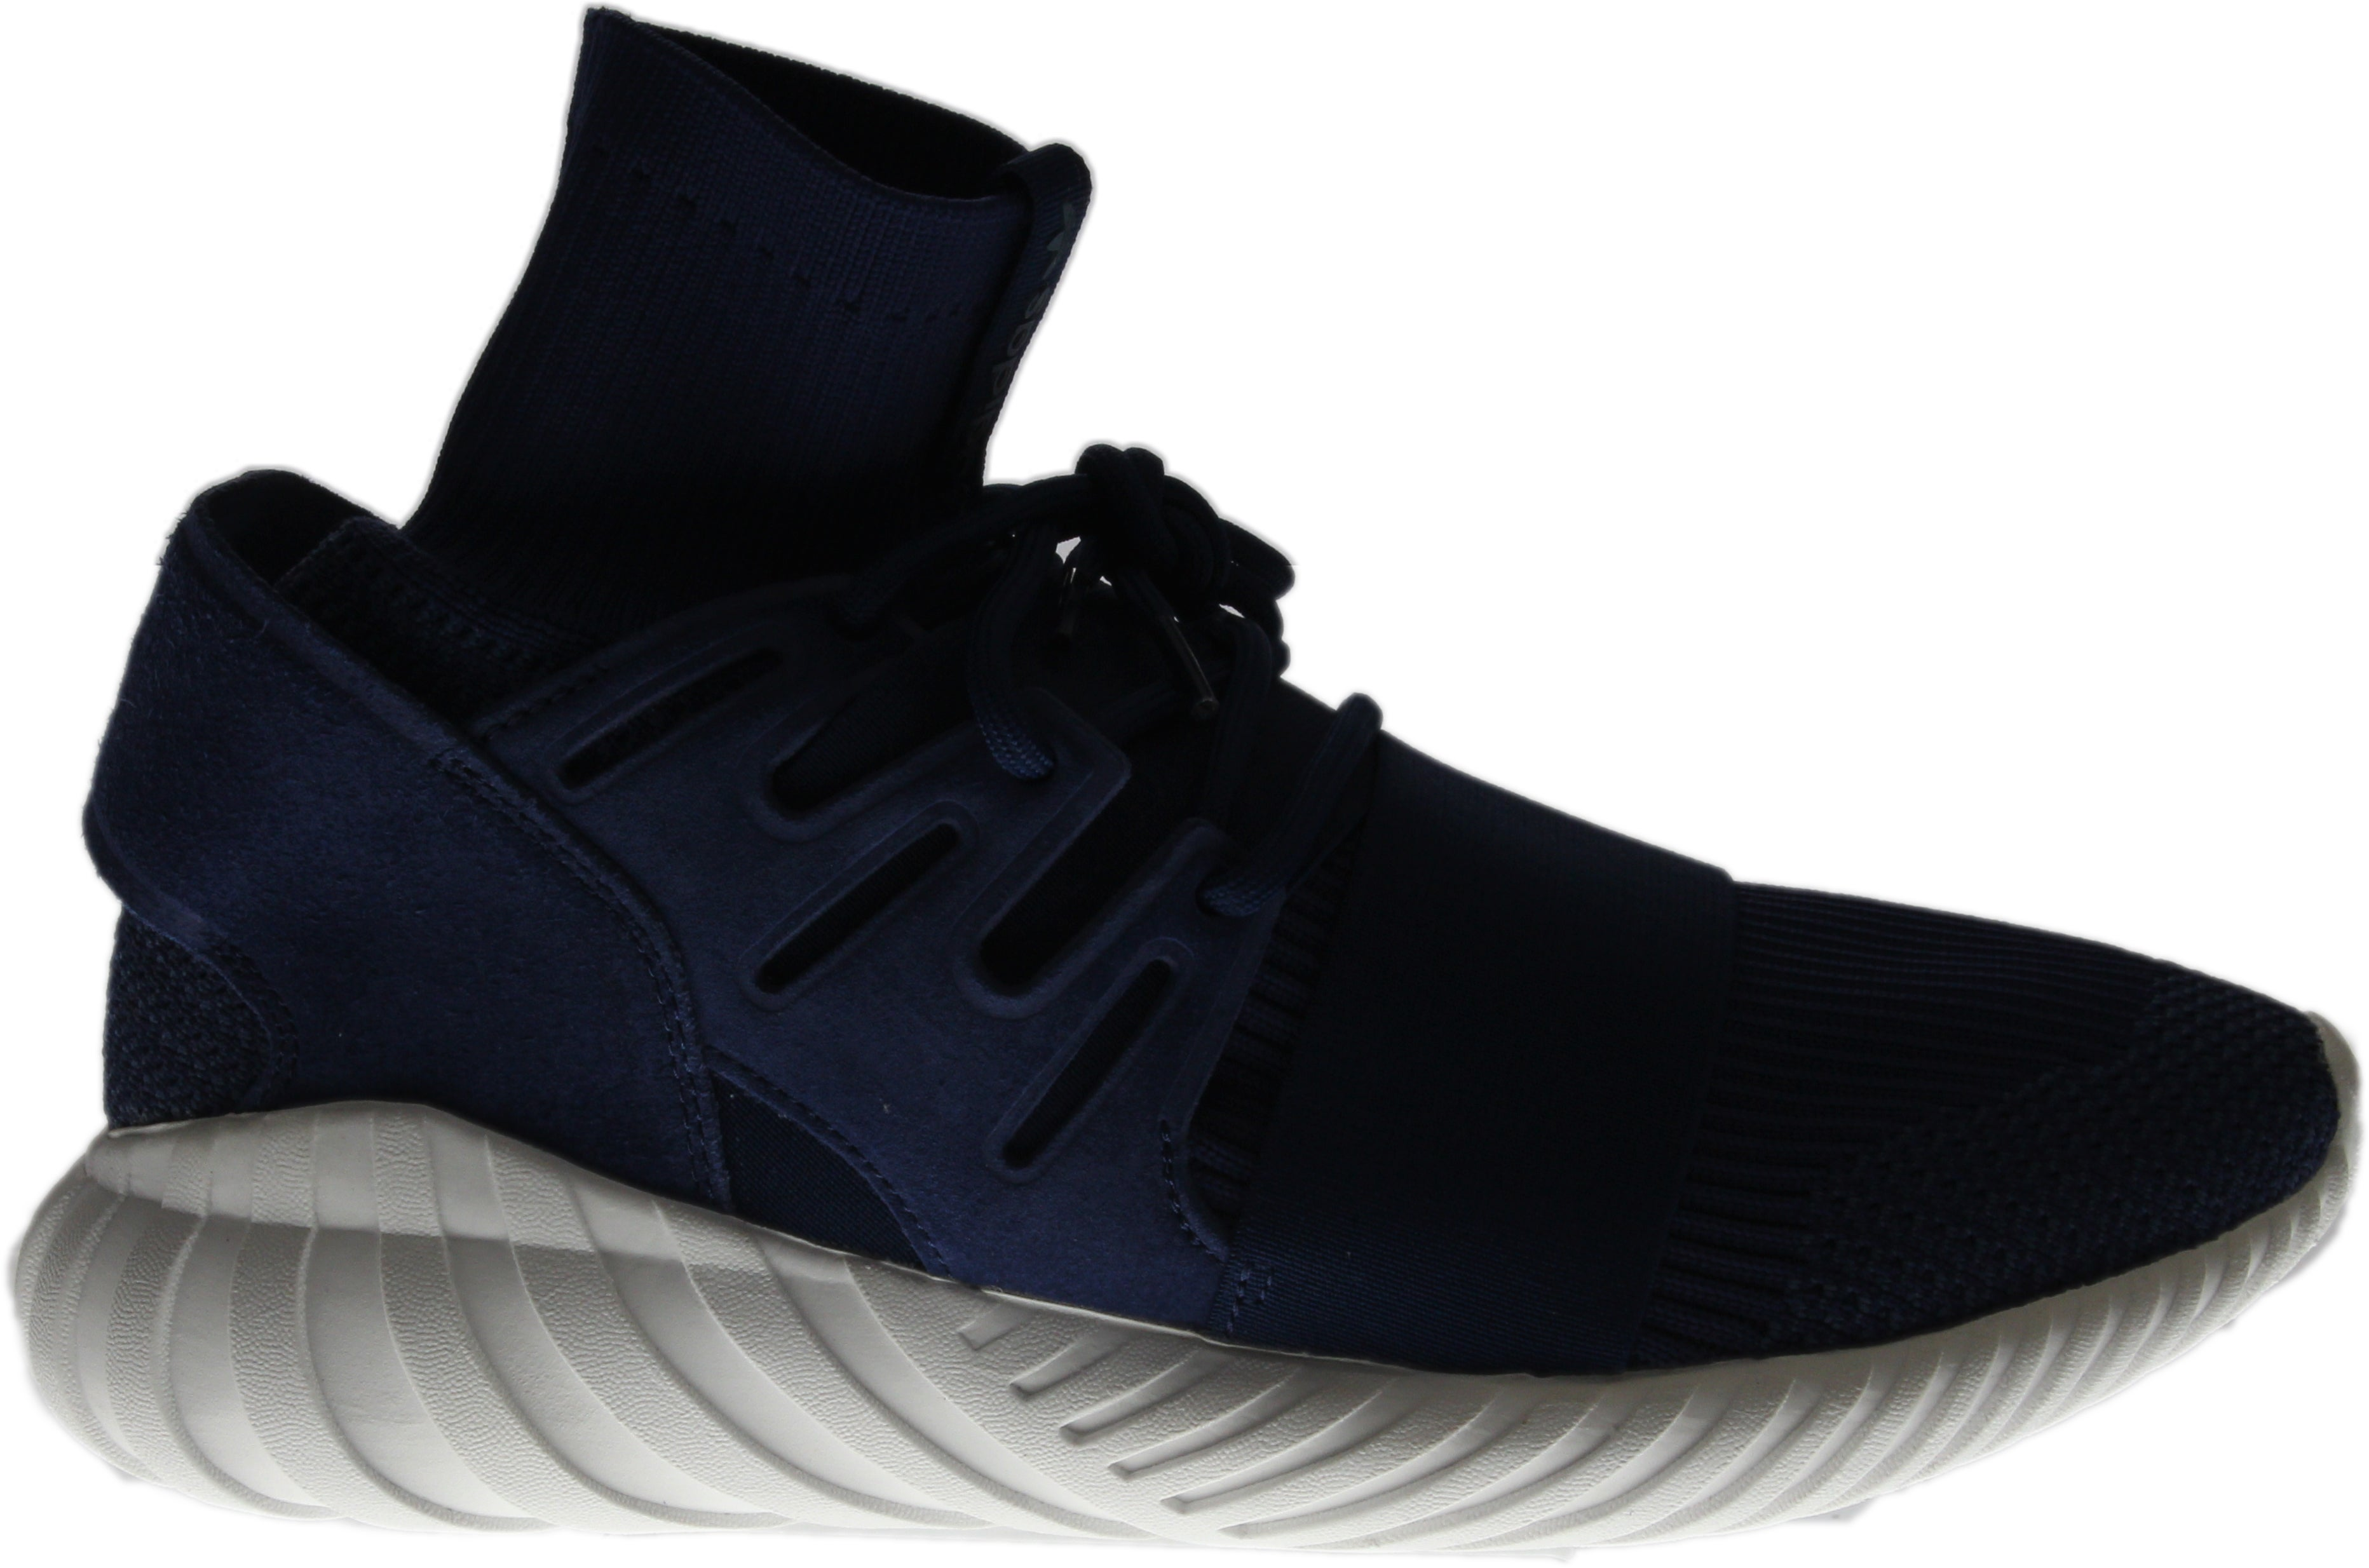 best service 604de bd733 Details about adidas Tubular Doom Pk - Blue - Mens